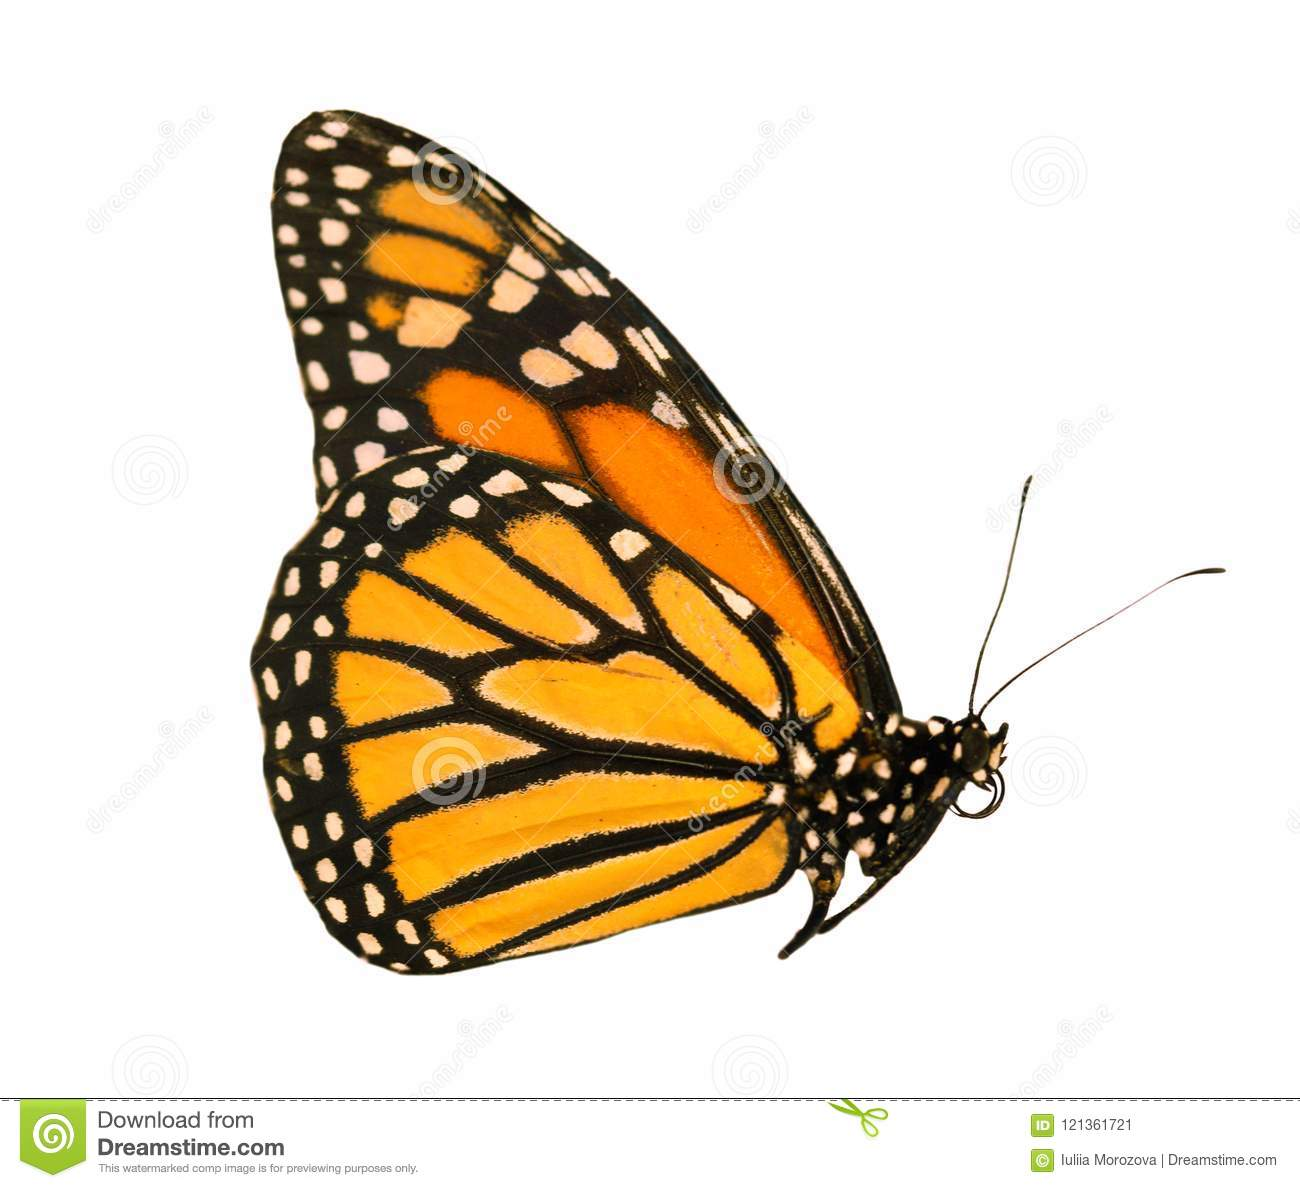 The monarch butterfly with wings closed is isolated on white background